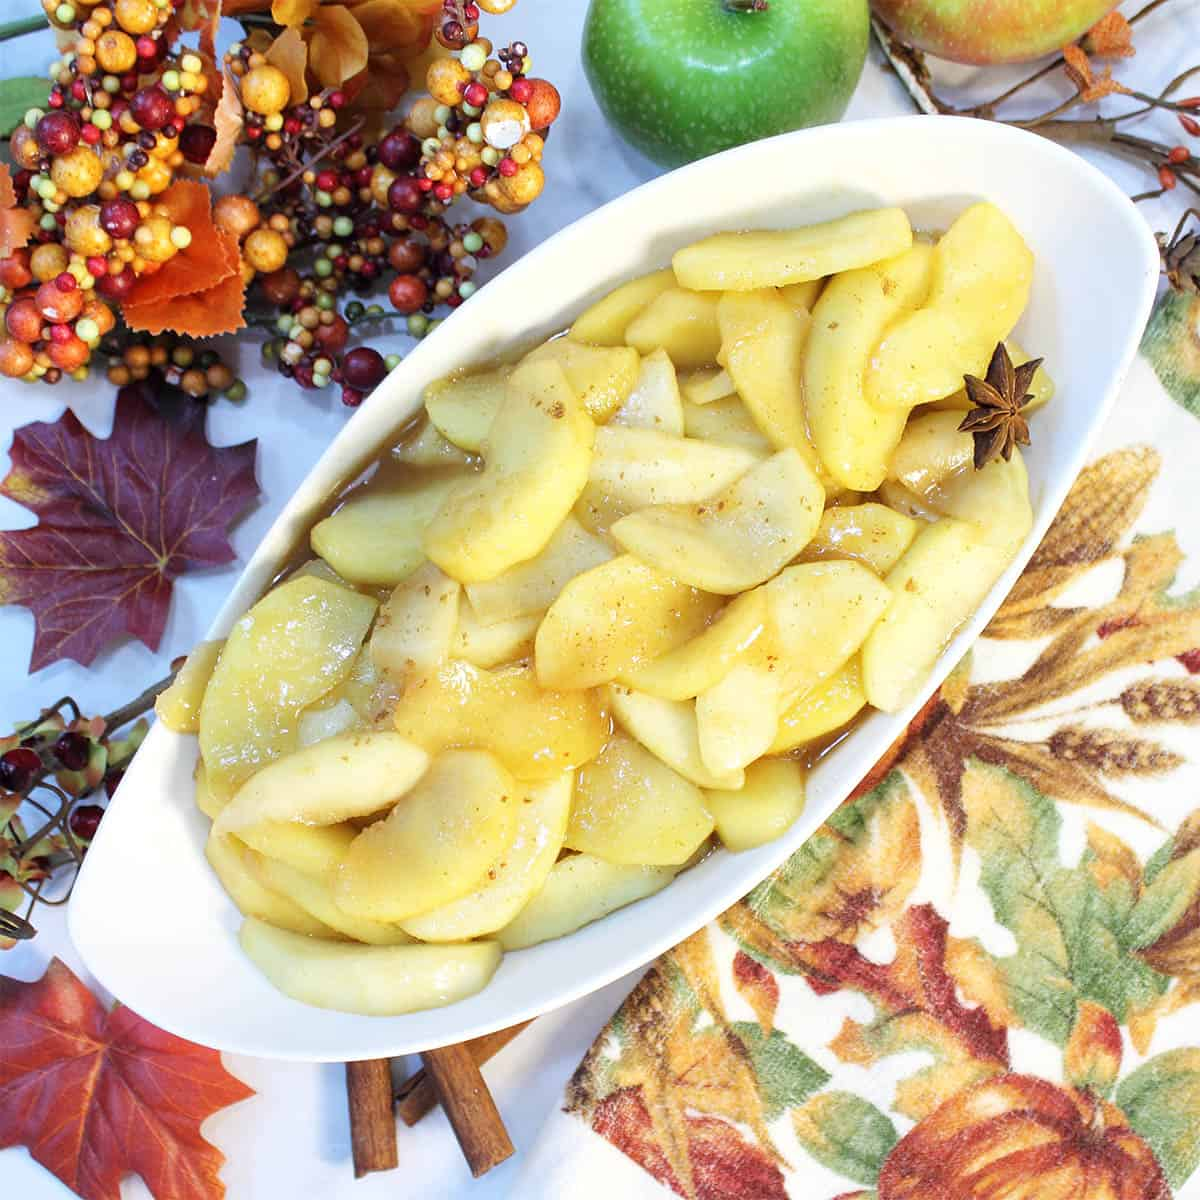 Overhead of serving bowl of apples with fall towel and leaves beside it.